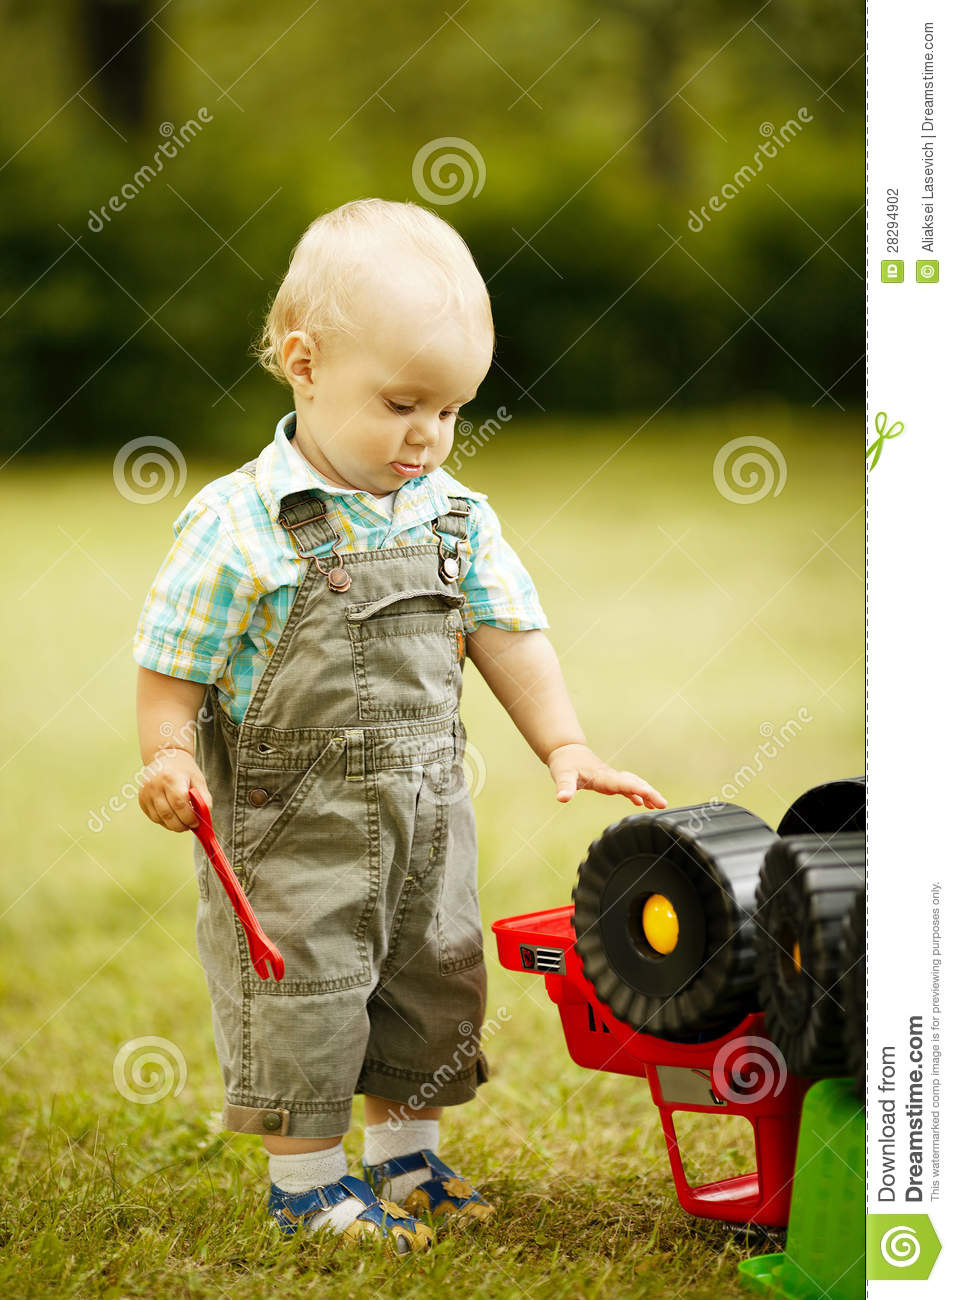 Little Boy With Toy Car : Little boy repairs toy car stock photo image of portrait